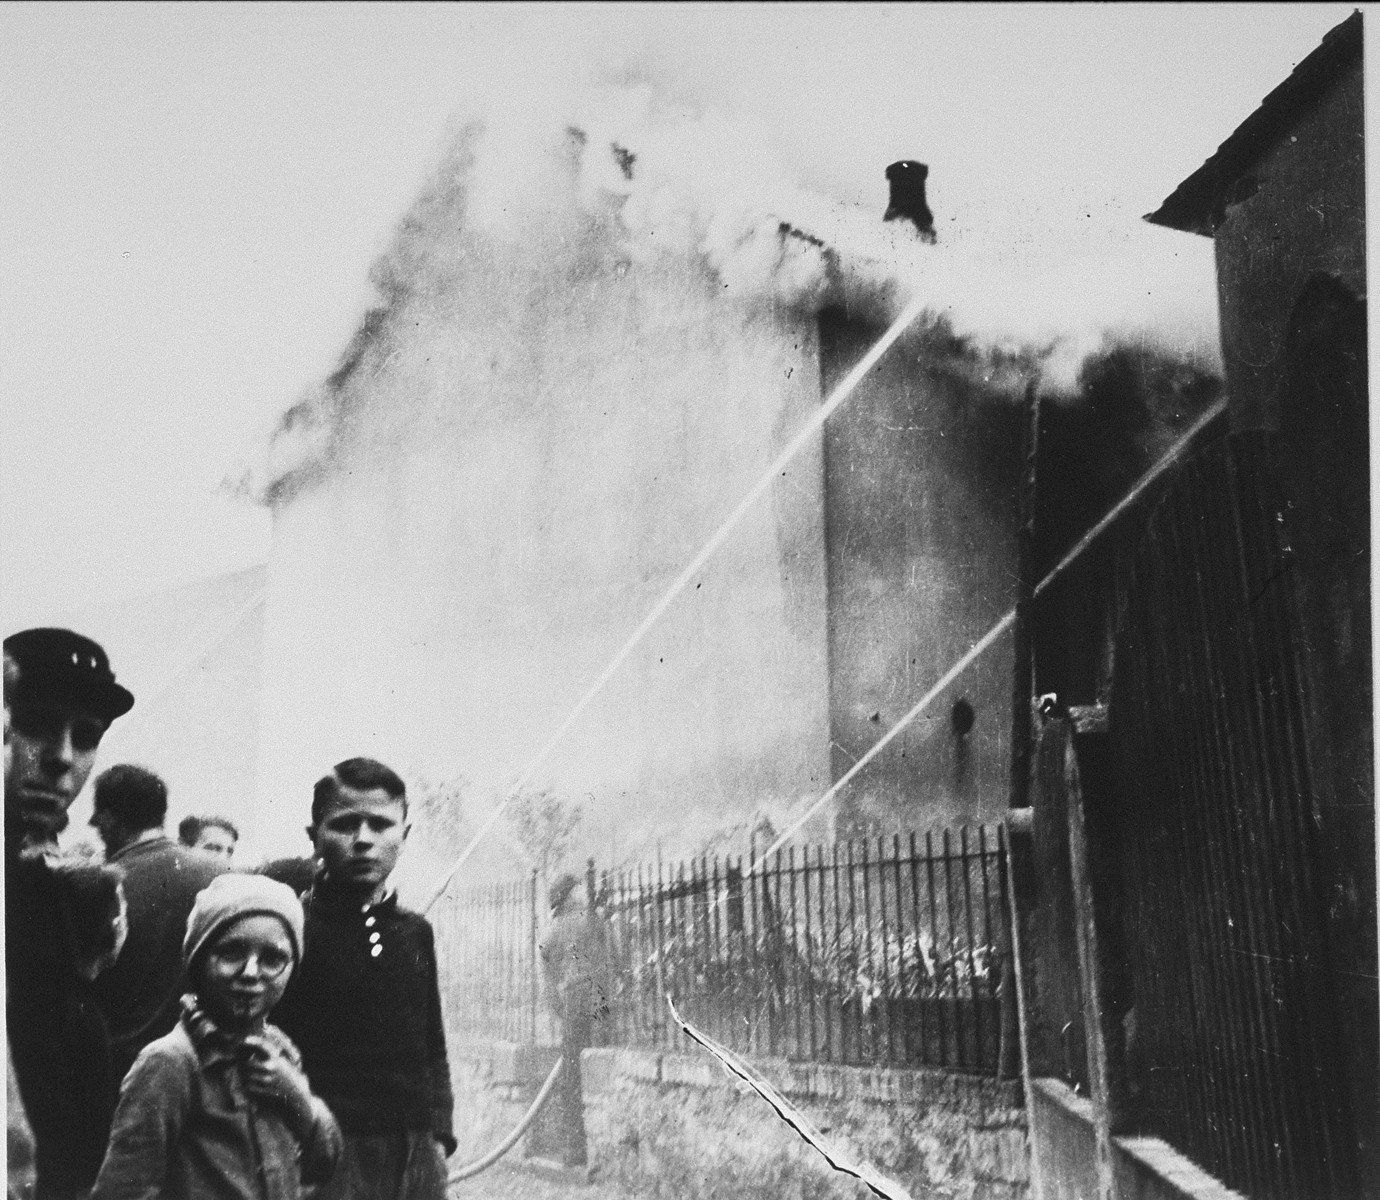 On the morning after Kristallnacht local residents watch as the Ober Ramstadt synagogue is destroyed by fire.     The local fire department prevented the fire from spreading to a nearby home, but did not try to limit the damage to the synagogue.  The youth who took the series of photographs of the burning synagogue in Ober-Ramstadt, Georg Schmidt,  came from a family that opposed the Nazis.  The film was confiscated by police from Schmidt's home the same day the photos were taken, and developed immediately.  The prints and negatives were stored in the city hall until a policeman in the service of the American occupation found them and removed them.  The son-in-law of the policeman found them in a toolbox and donated them to the city archive.